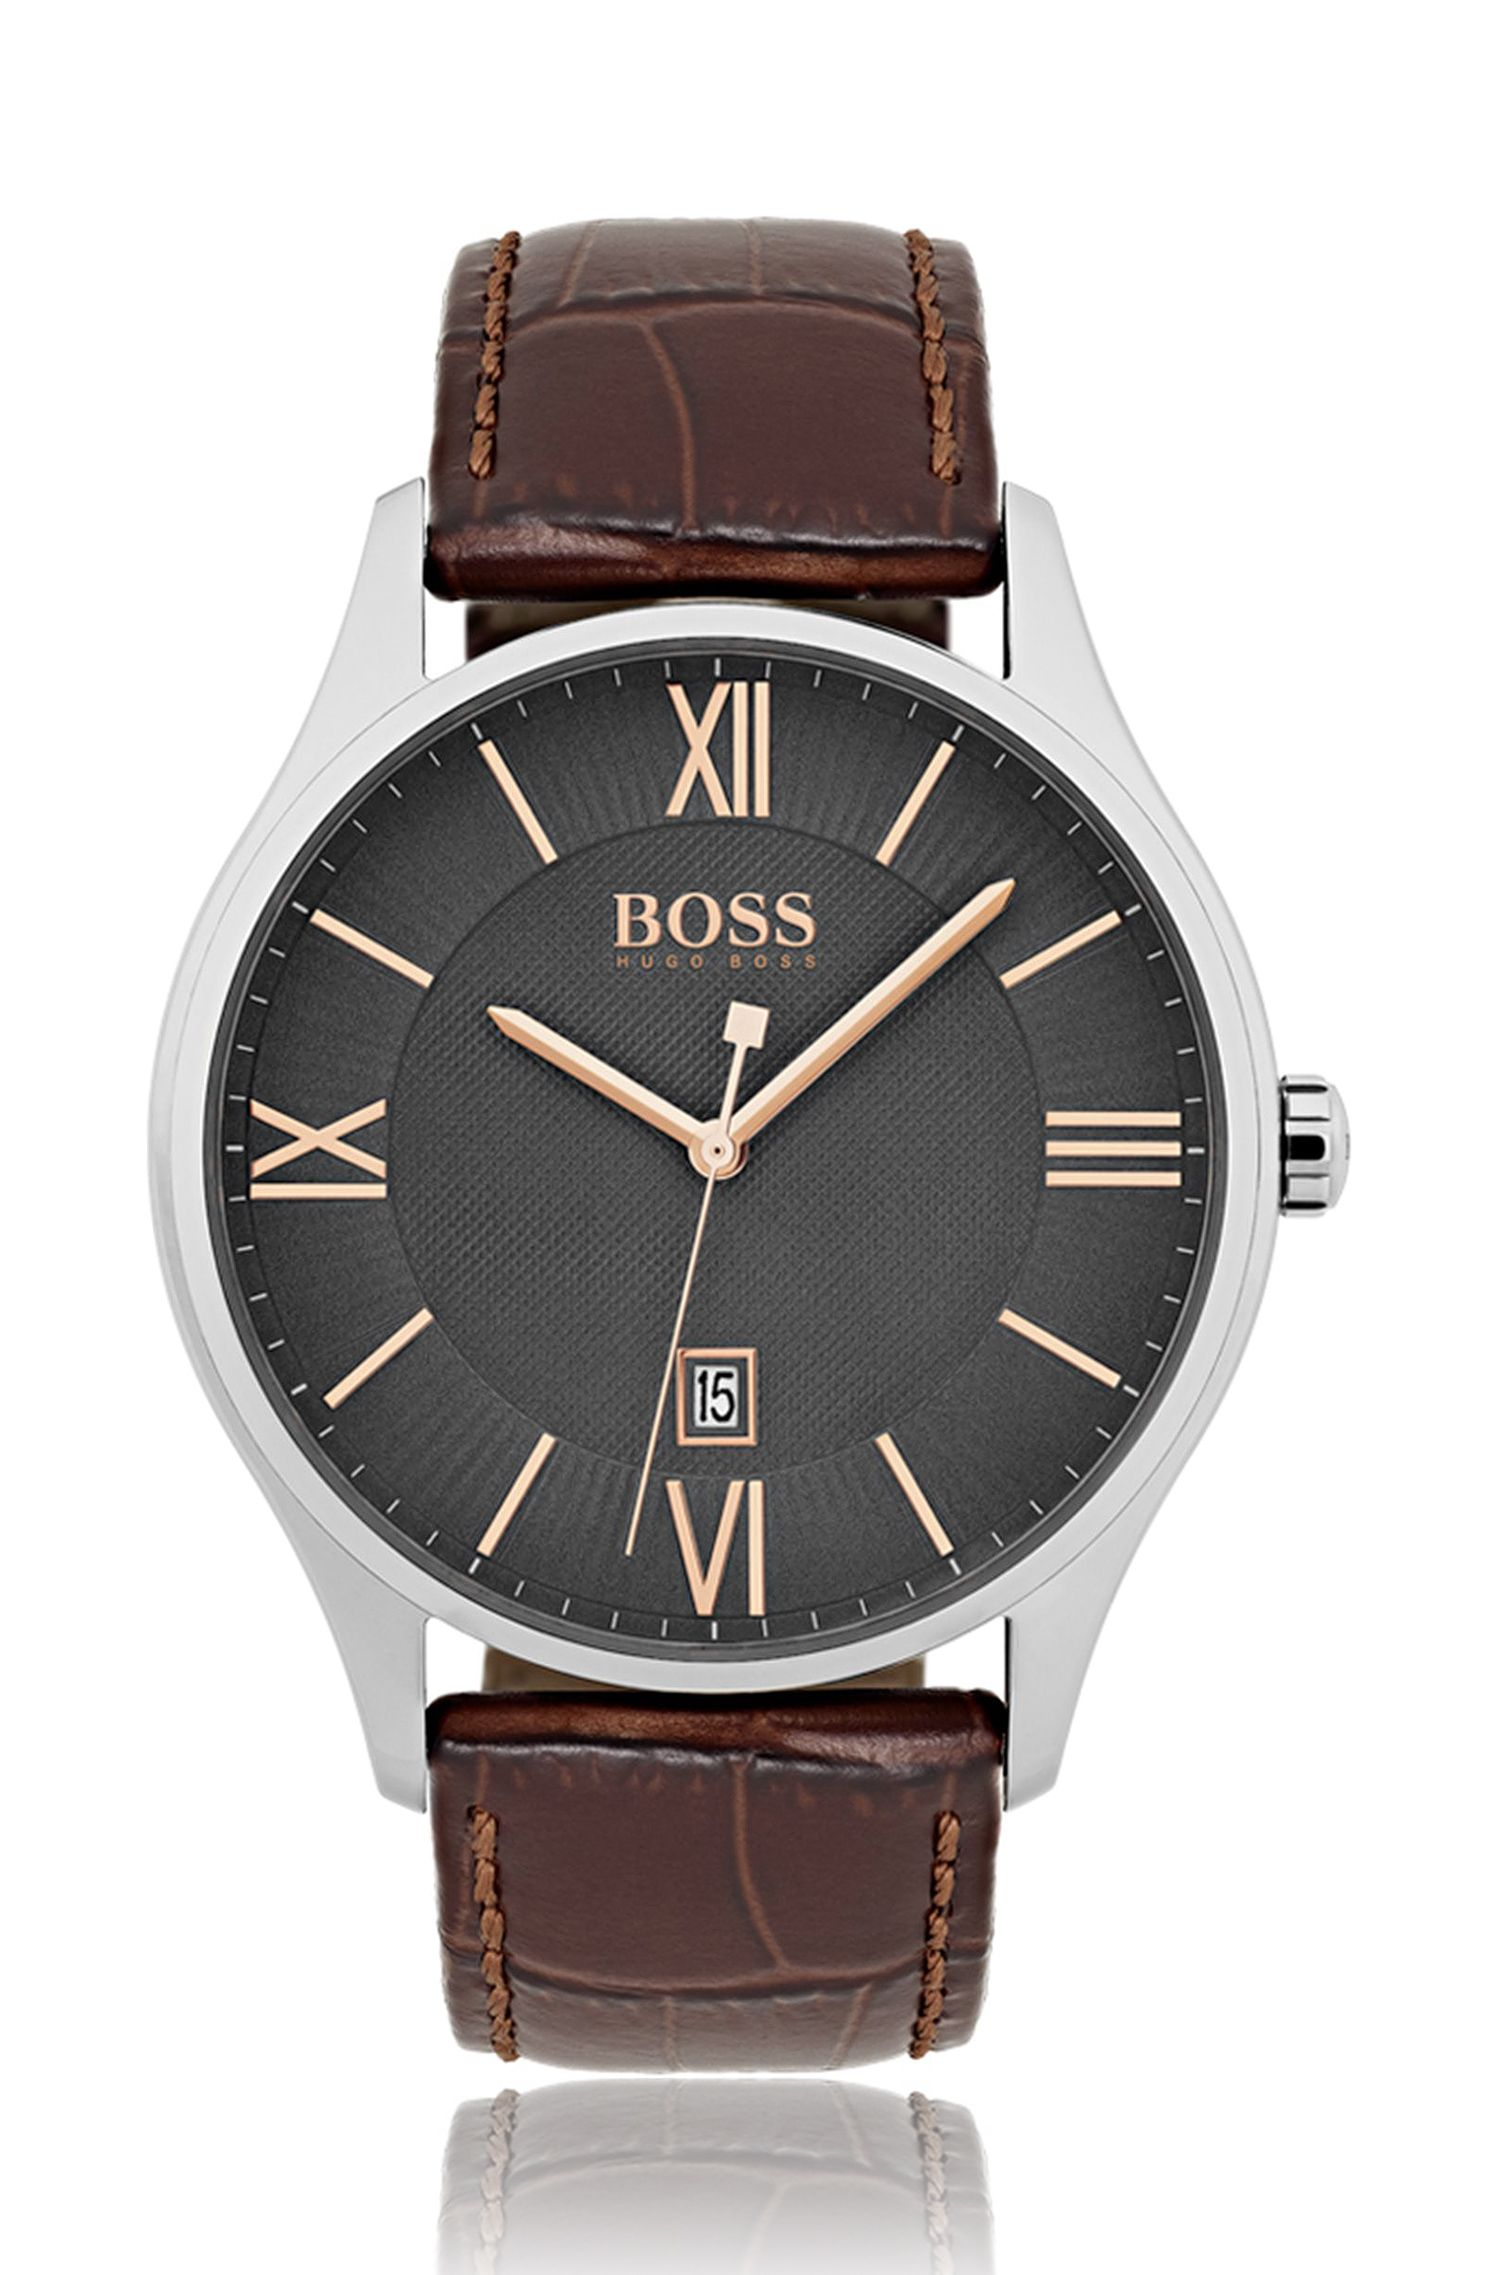 Polished stainless-steel watch with grey two-level dial and embossed leather strap